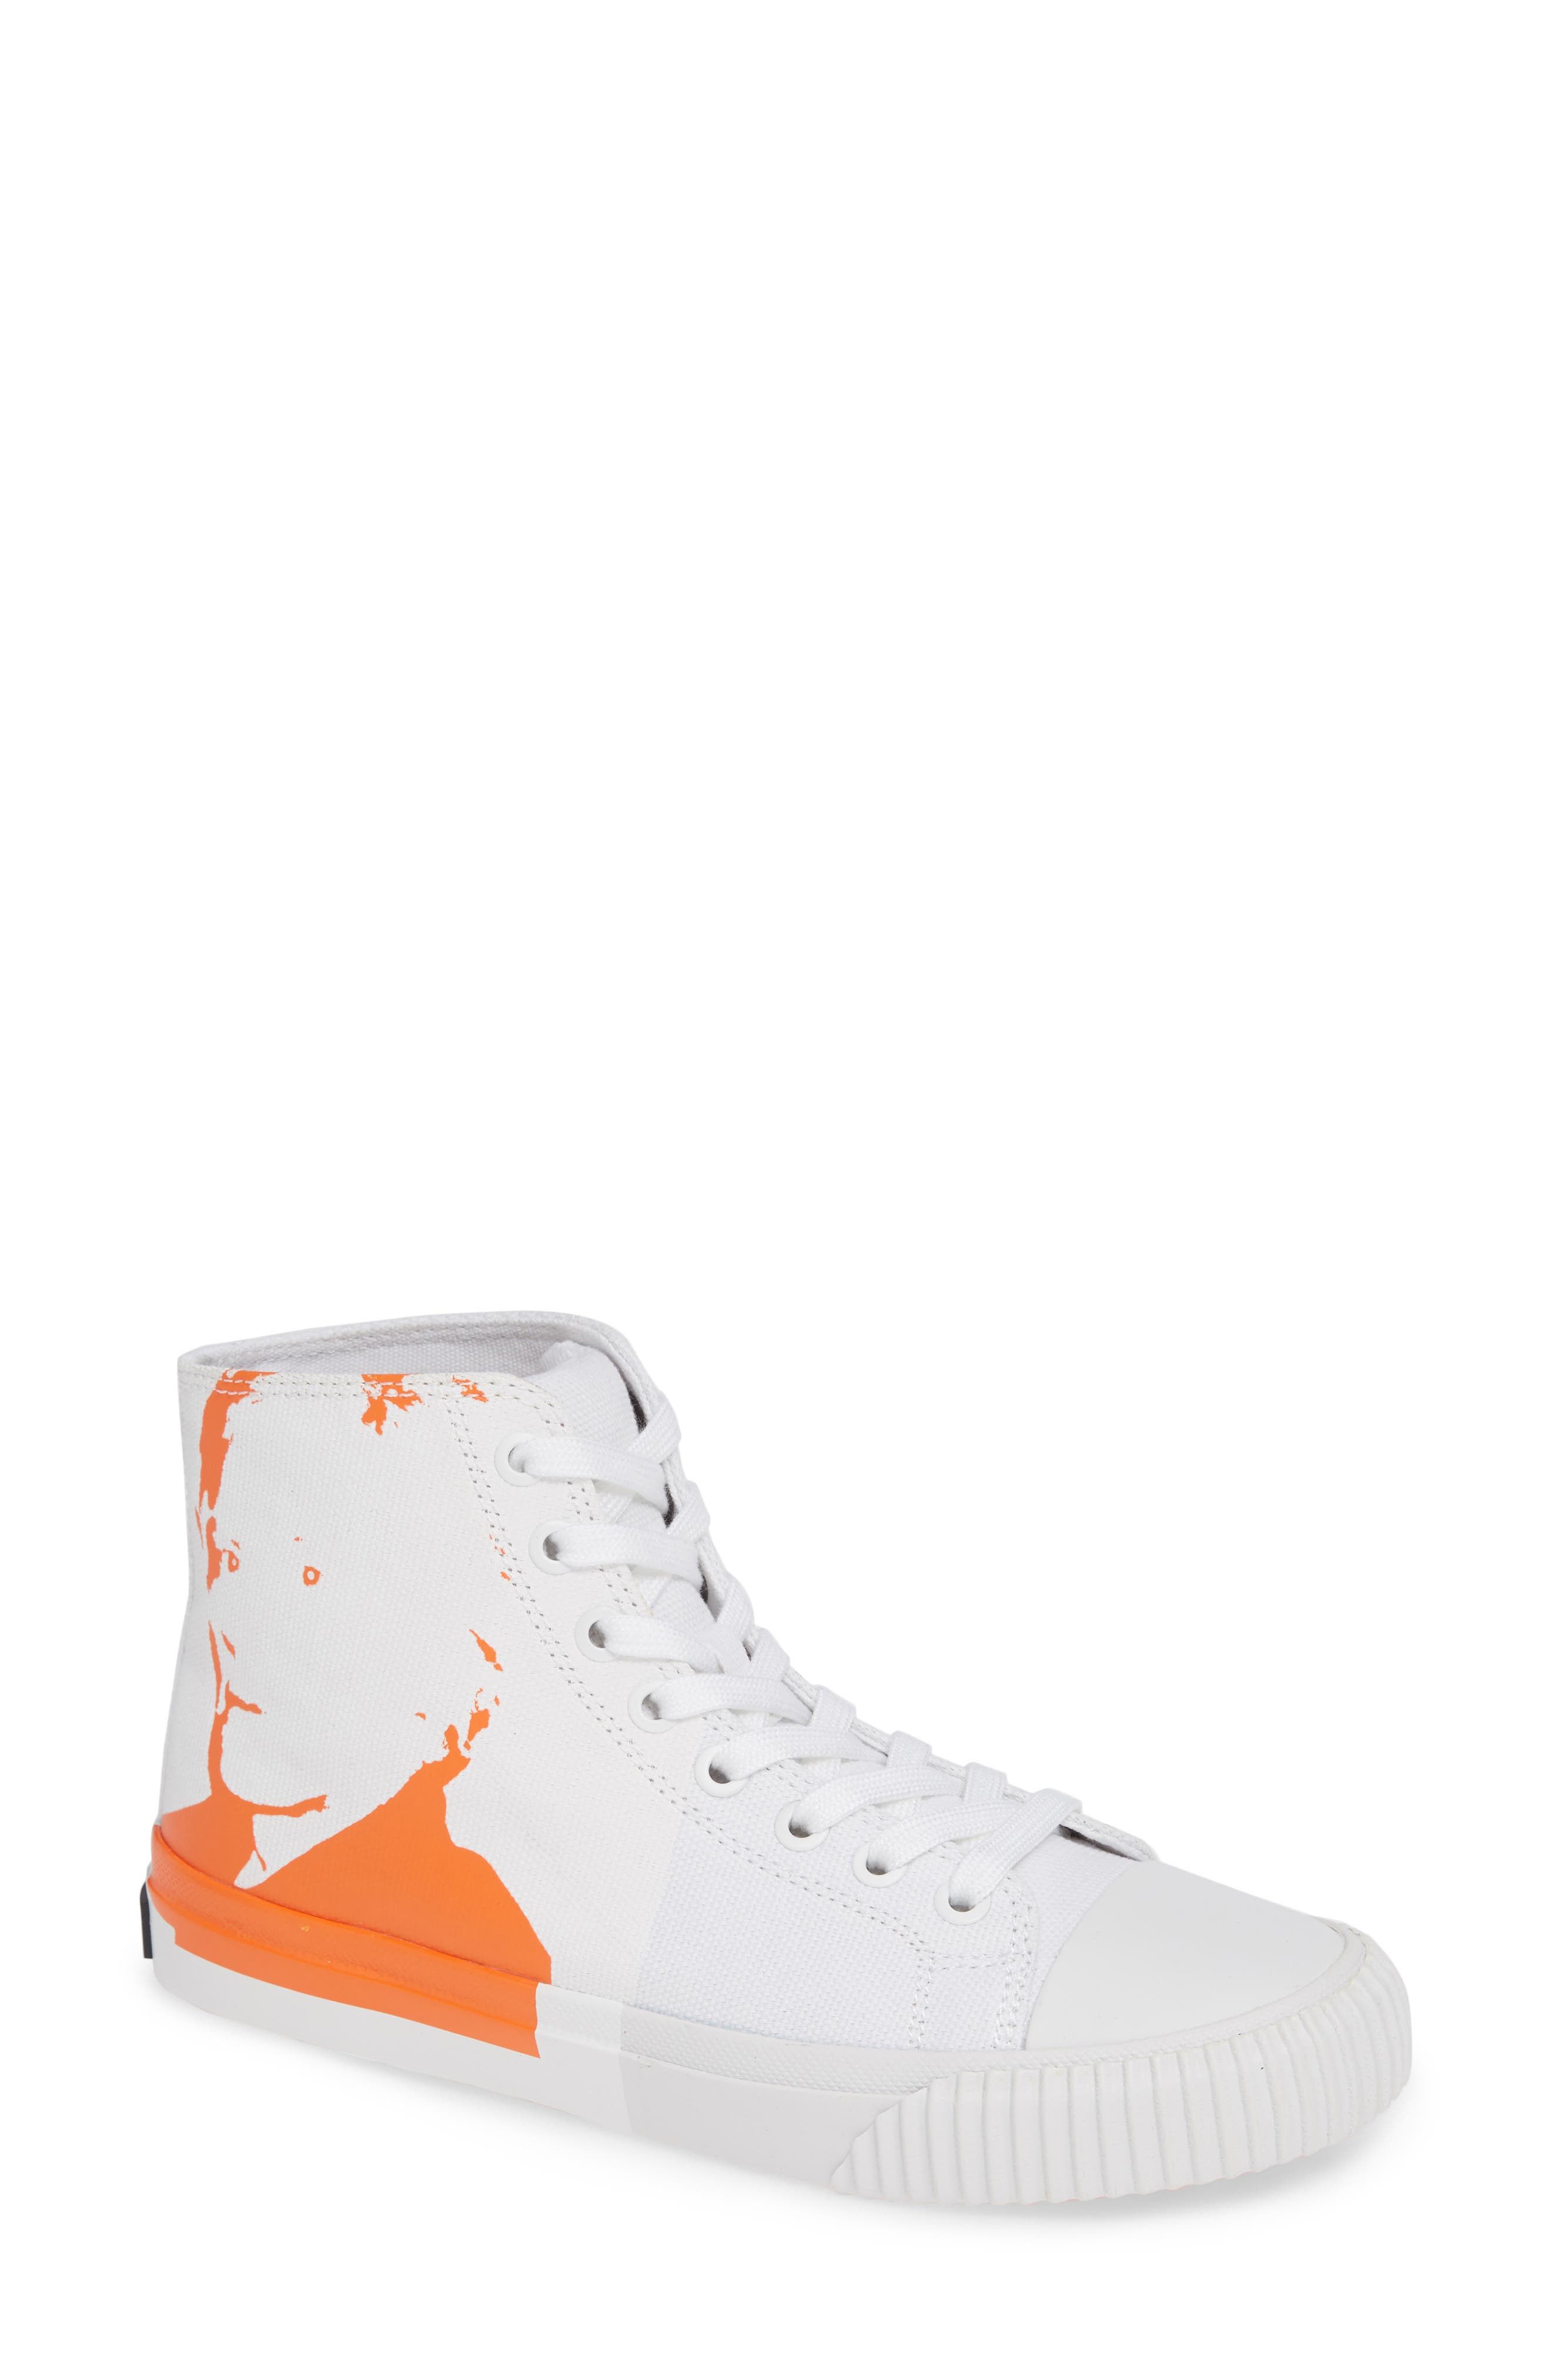 ICONICA HIGH TOP SNEAKER